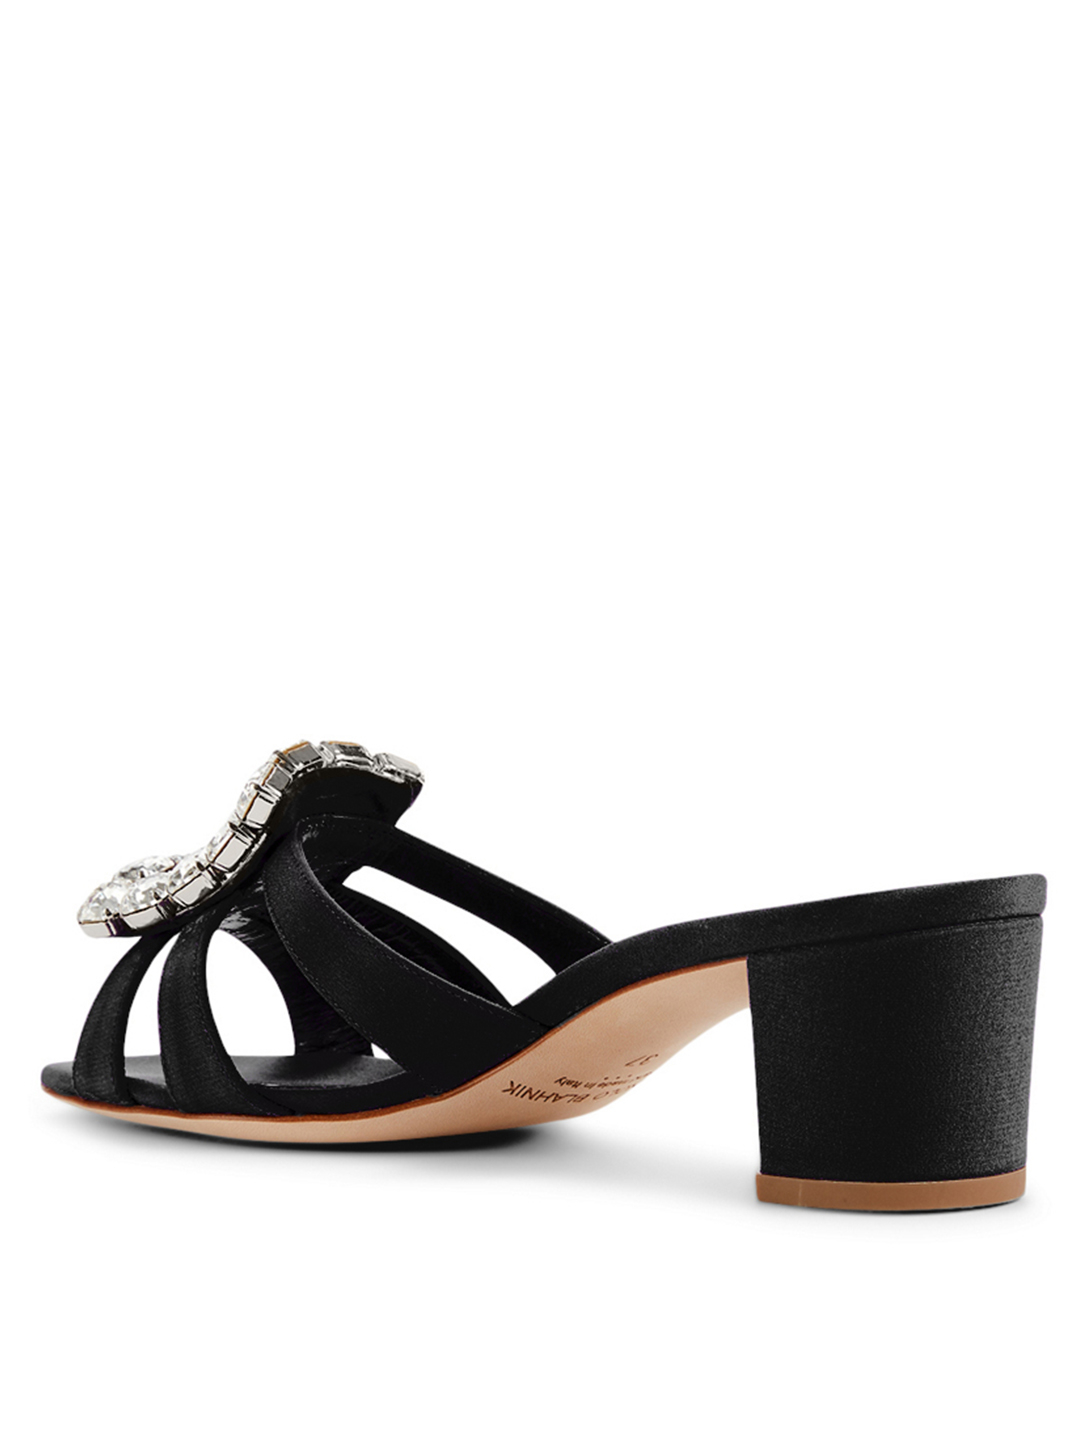 MANOLO BLAHNIK Ilunanew 50 Crepe de Chine Heeled Mule Sandals Women's Black